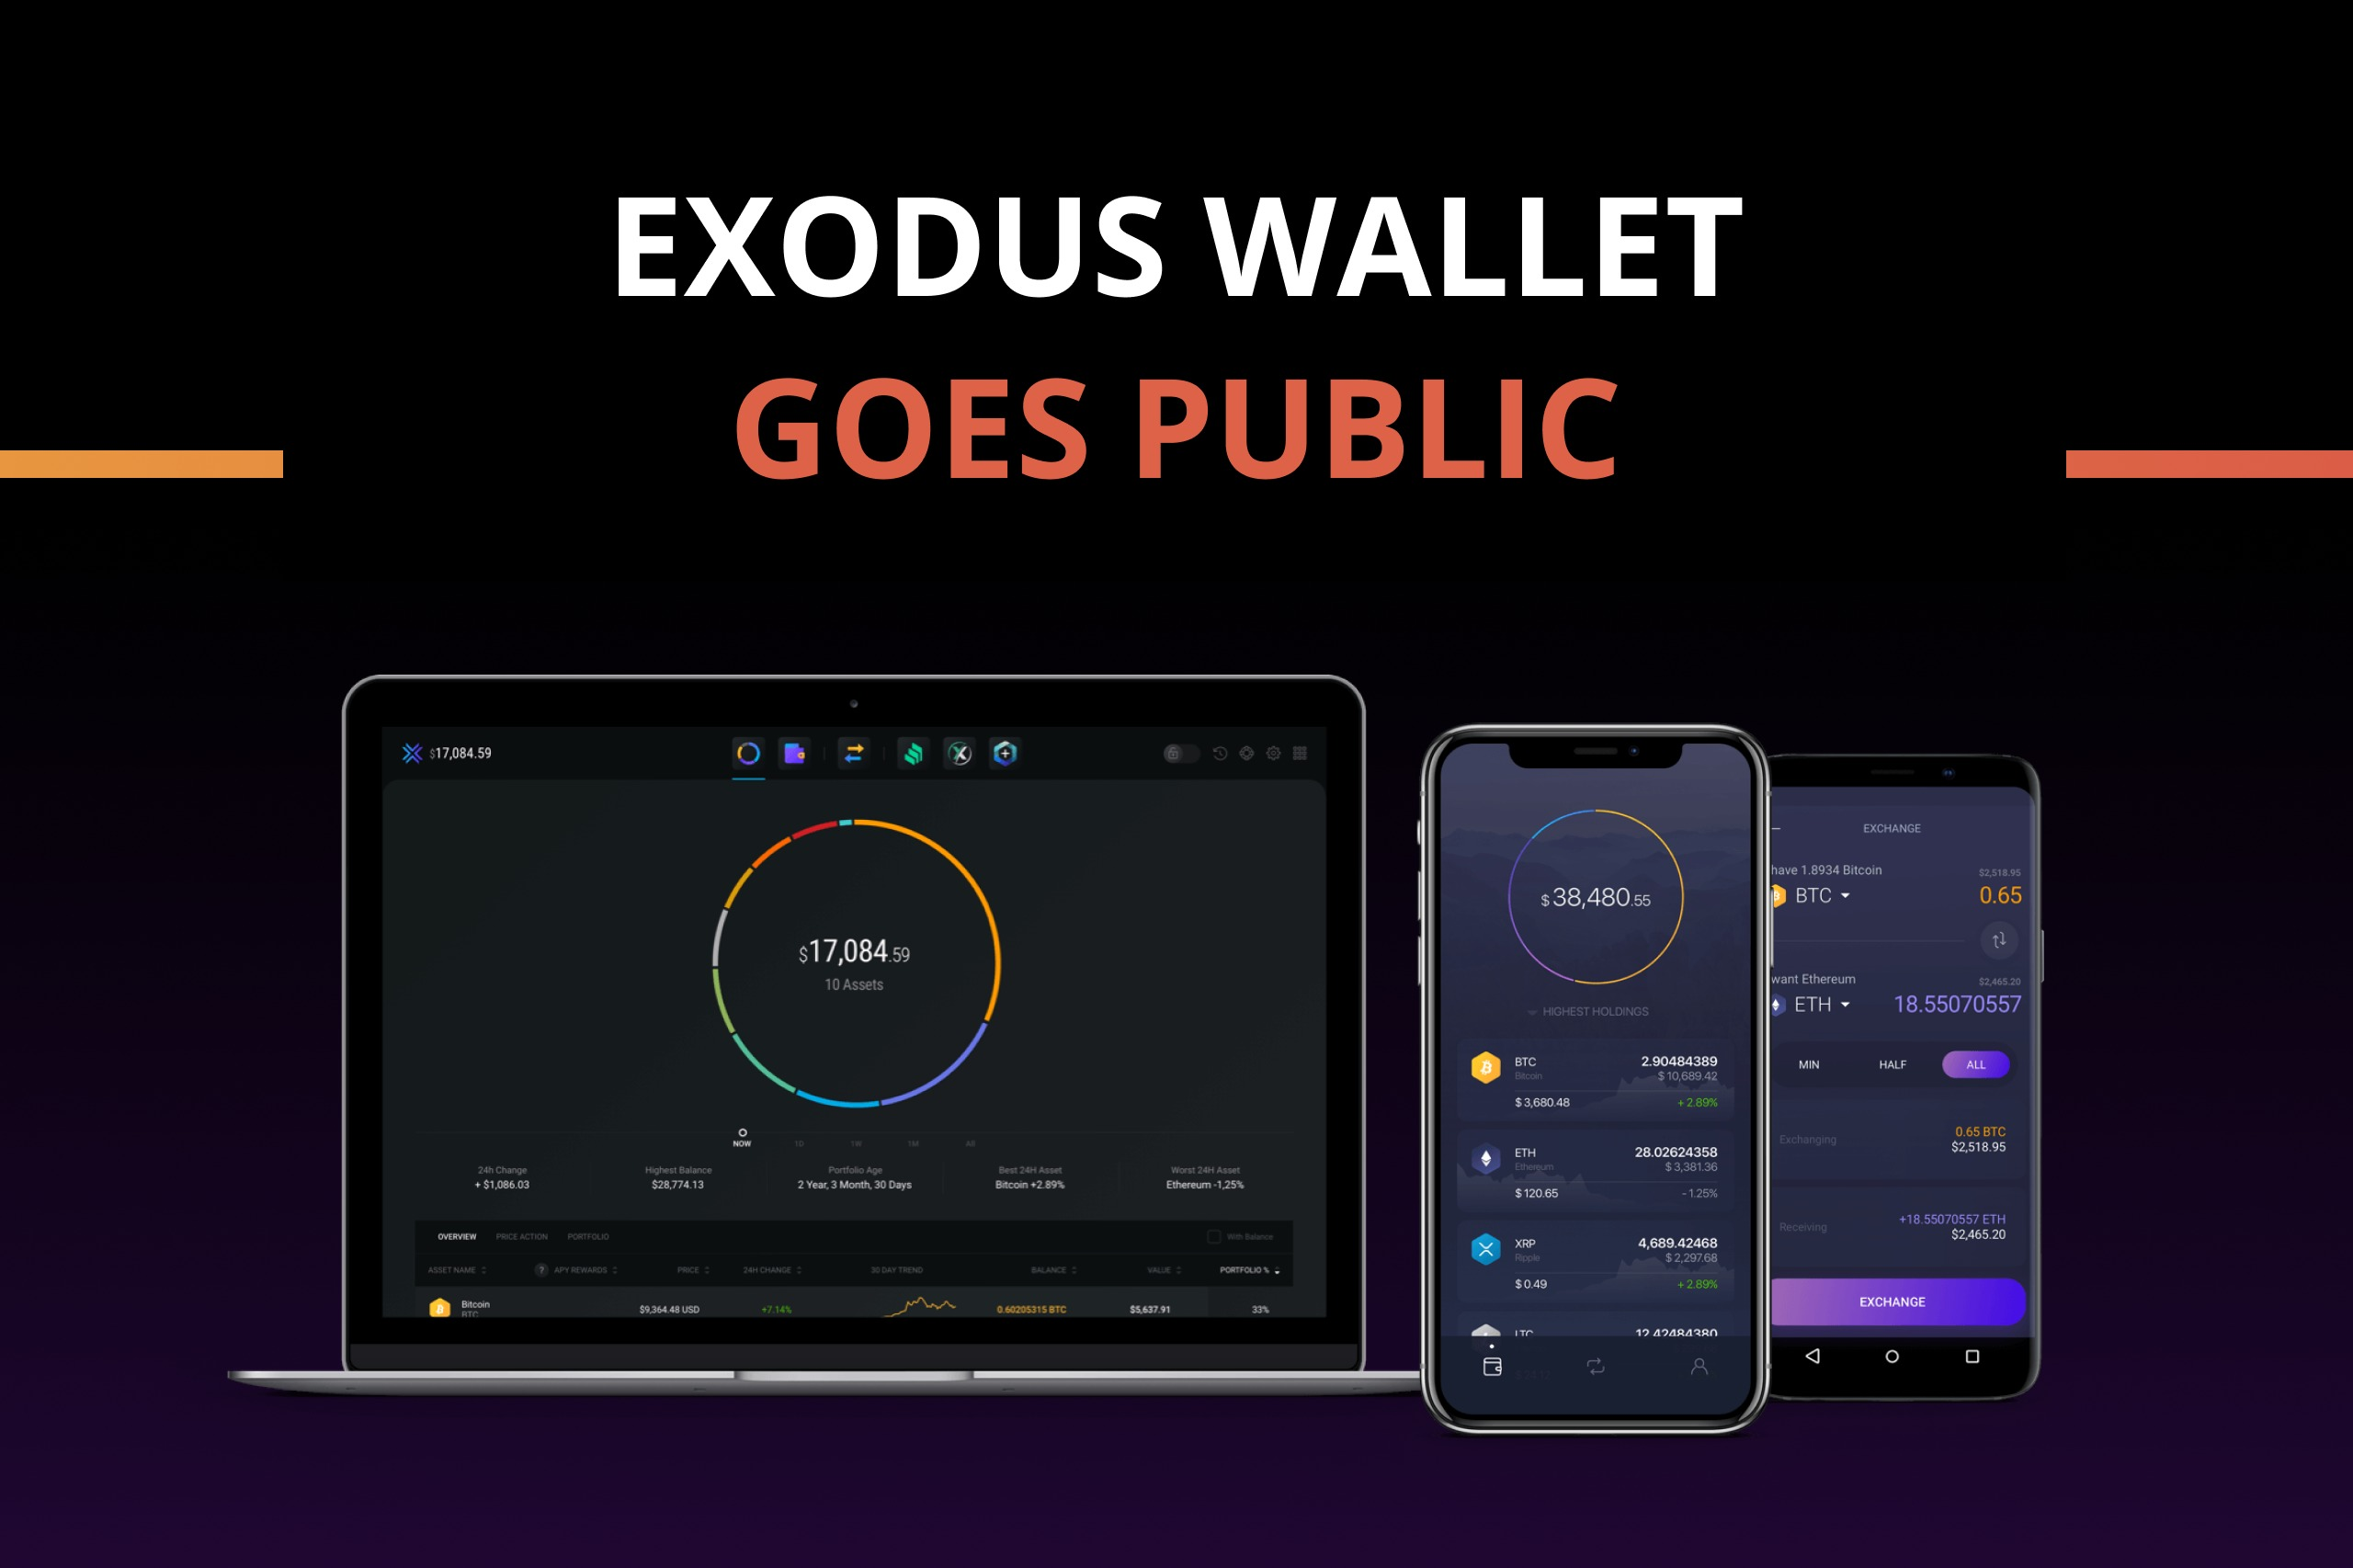 Exodus is trying to do an upgraded version of an ICO